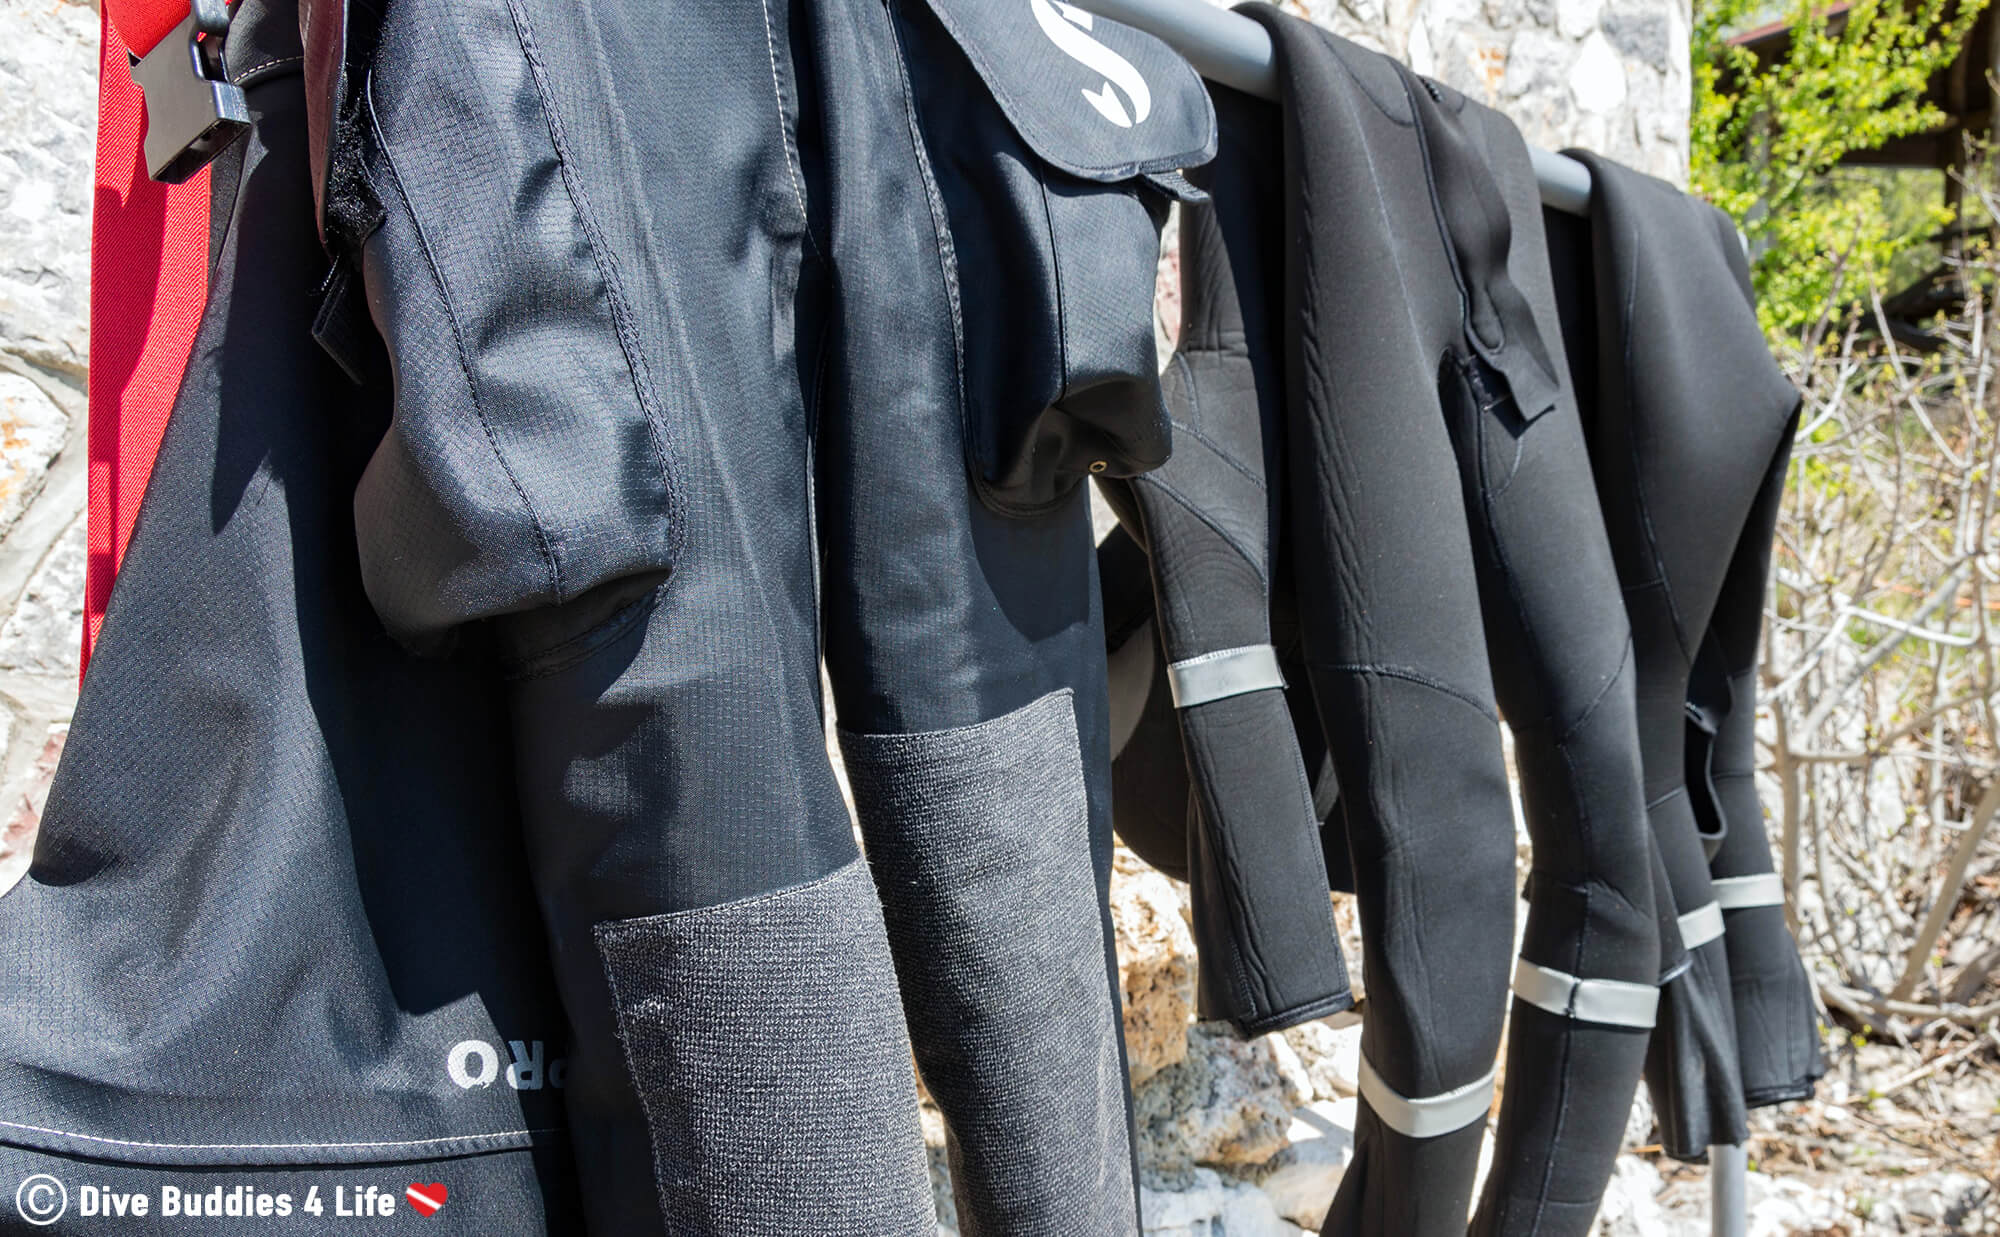 A Drysuit And Wetsuit Hanging Out To Dry In The Shade After Being Rinsed In A Freshwater Bin In Macedonia, Europe